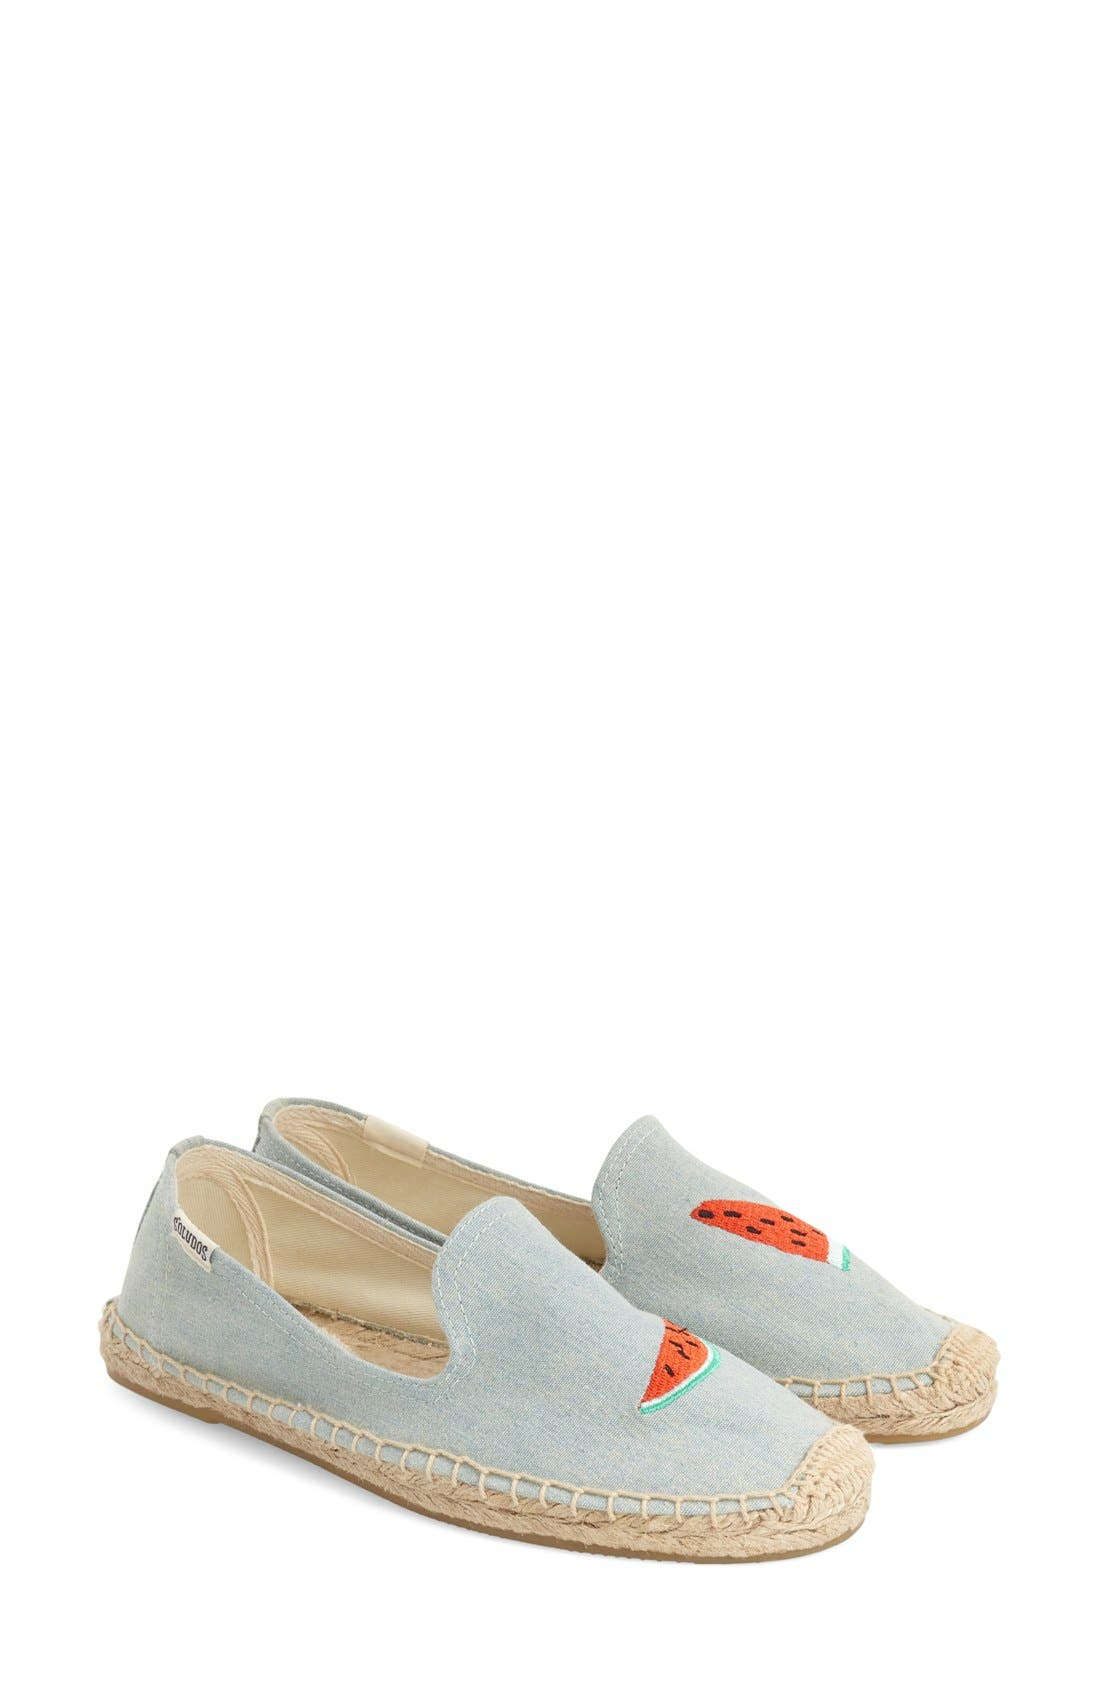 SOLUDOS,                             'Watermelon' Embroidered Flat,                             Main thumbnail 1, color,                             420